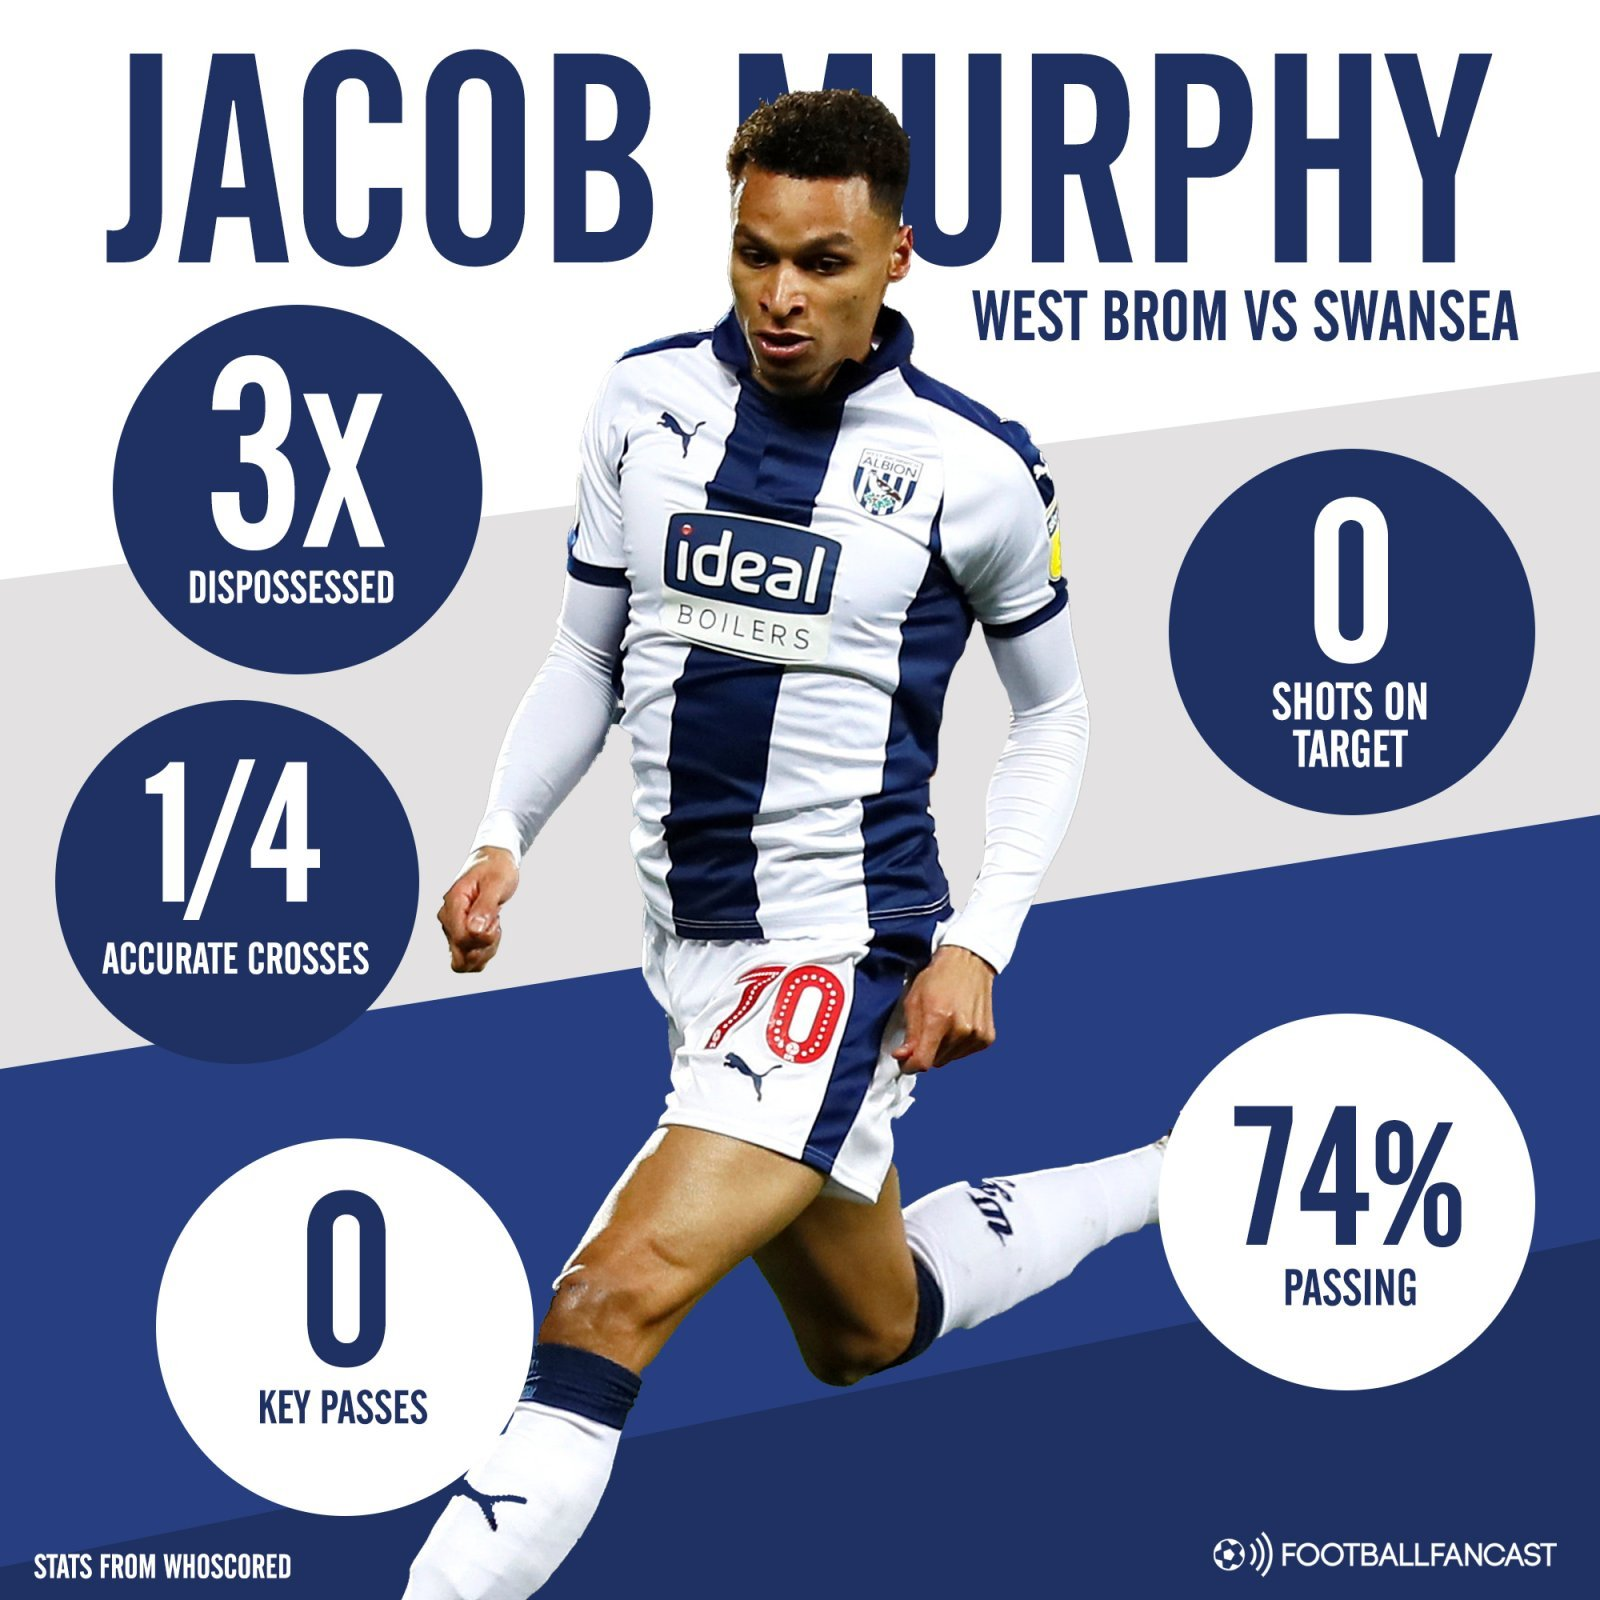 West Brom winger Jacob Murphys stats vs Swansea - So disappointing again: West Brom player needs to seriously buck up his ideas under new manager